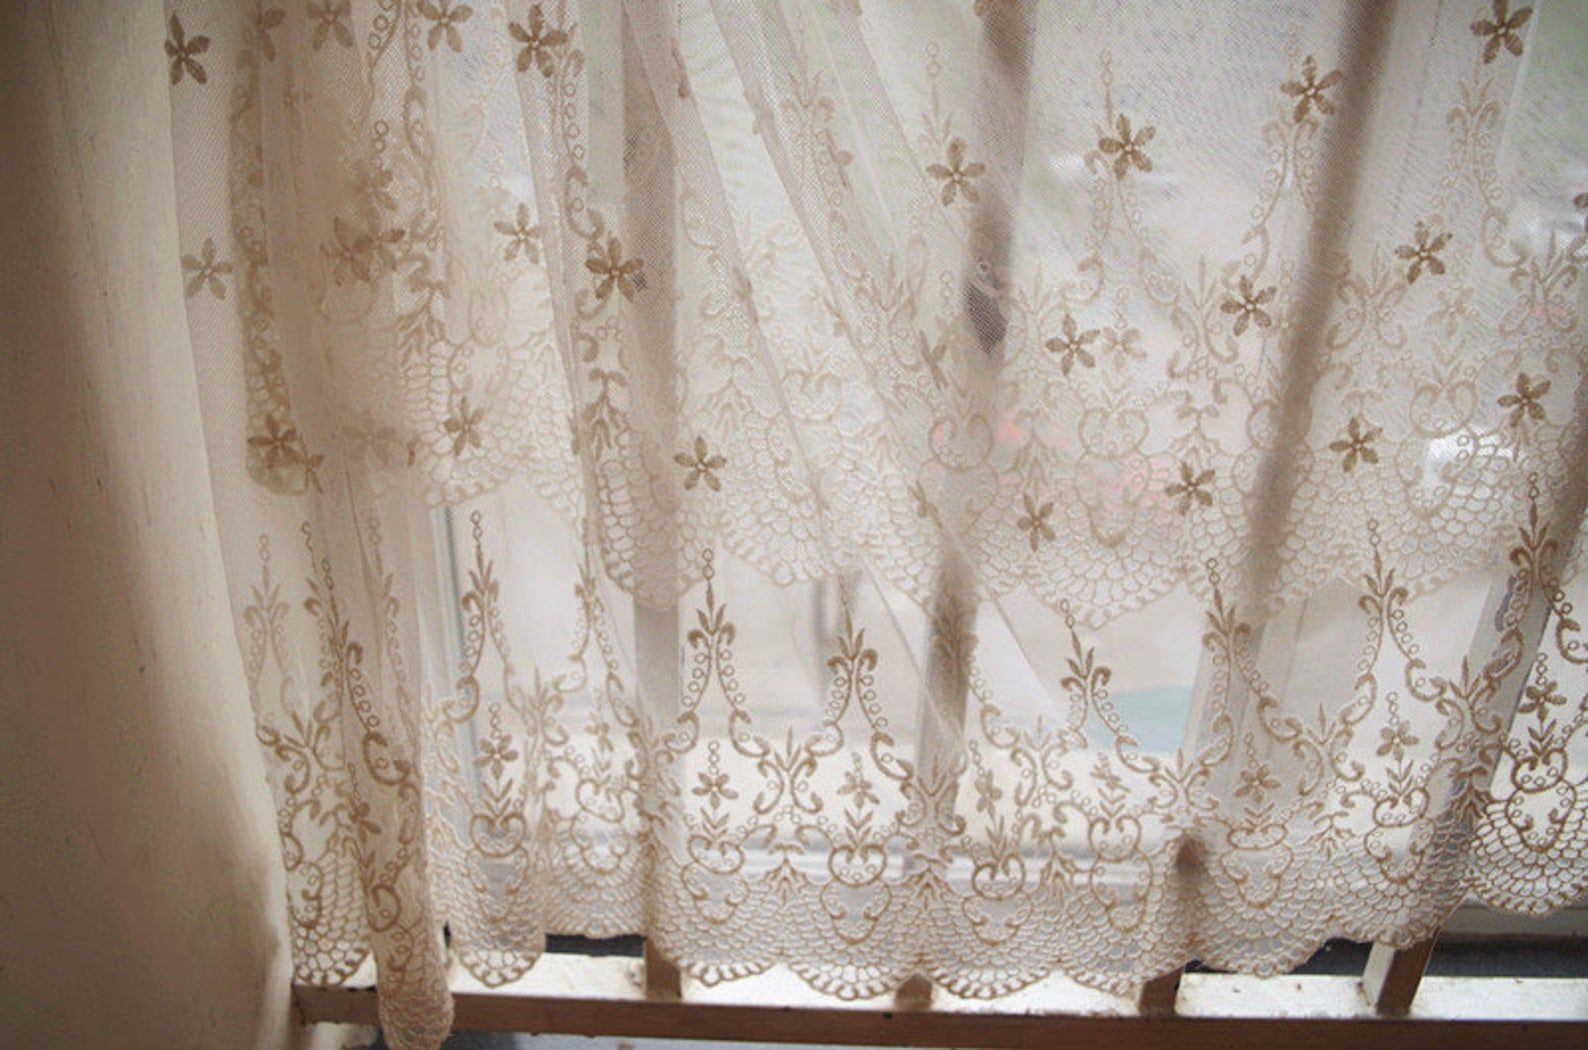 ivory Lace fabric, Embroidered tulle lace fabric, curtain fabric, cotton embroidery lace